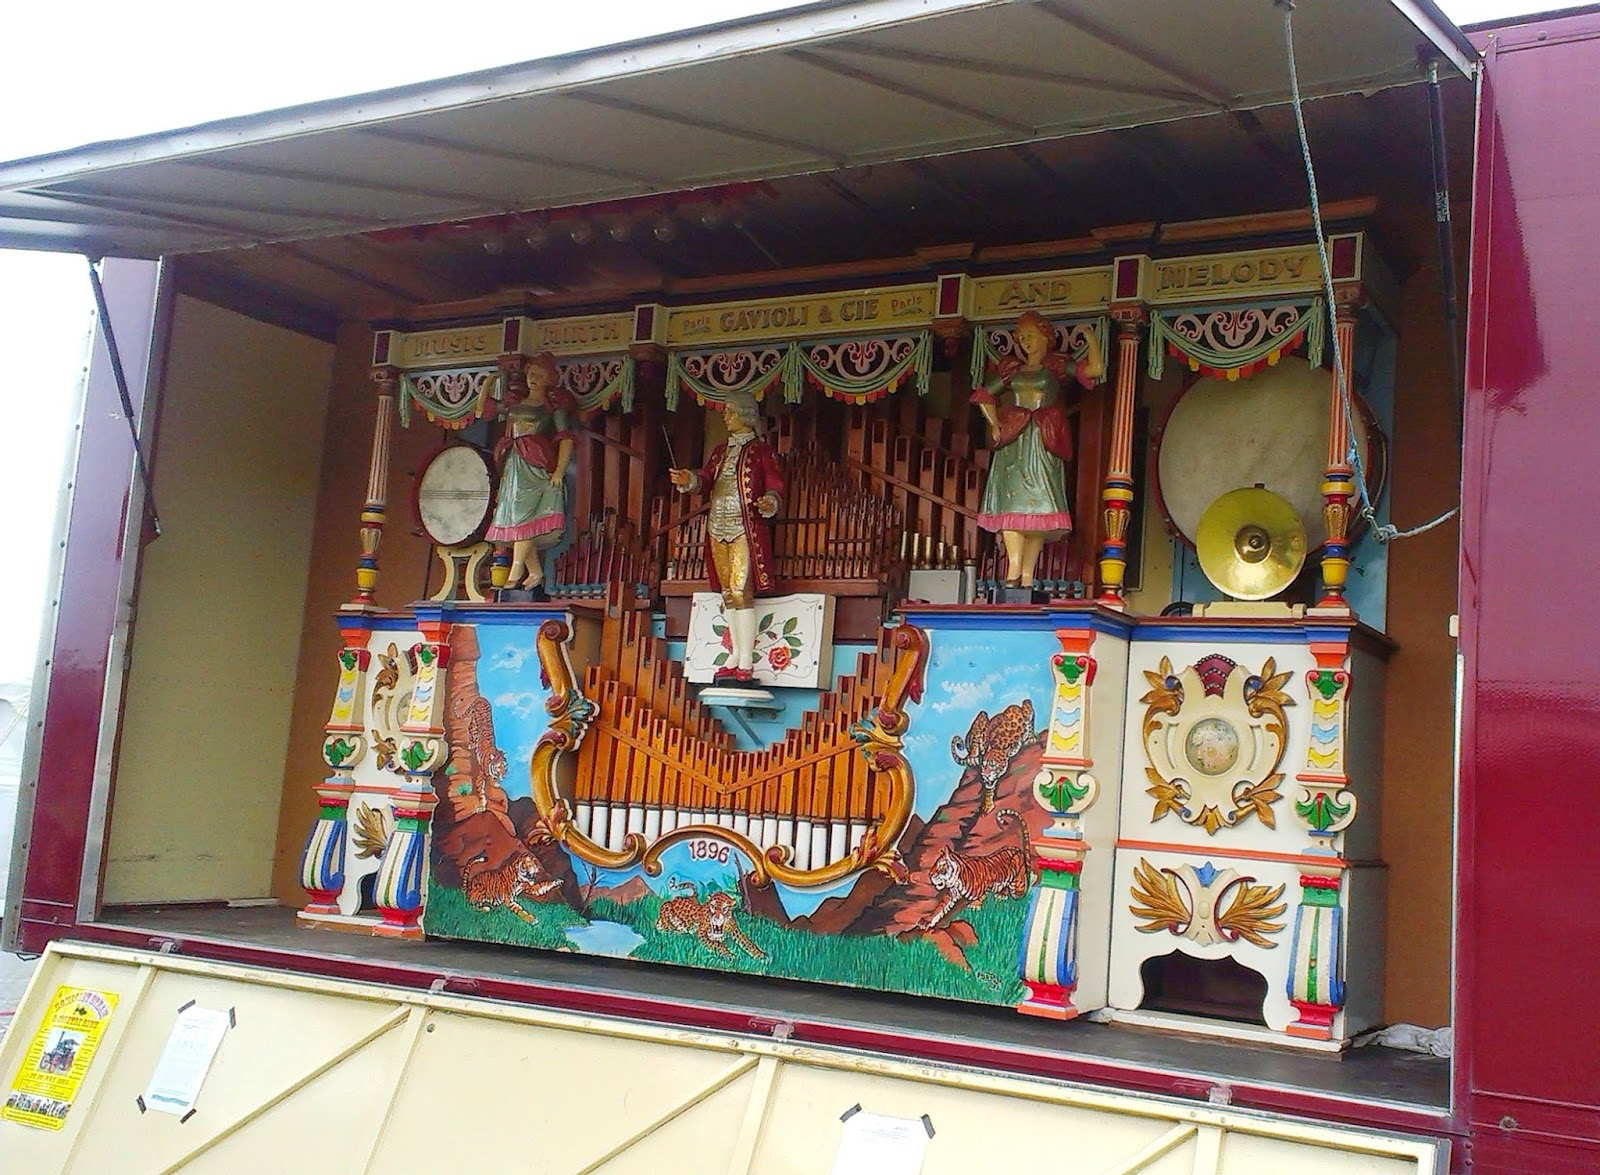 1890s fairground organ